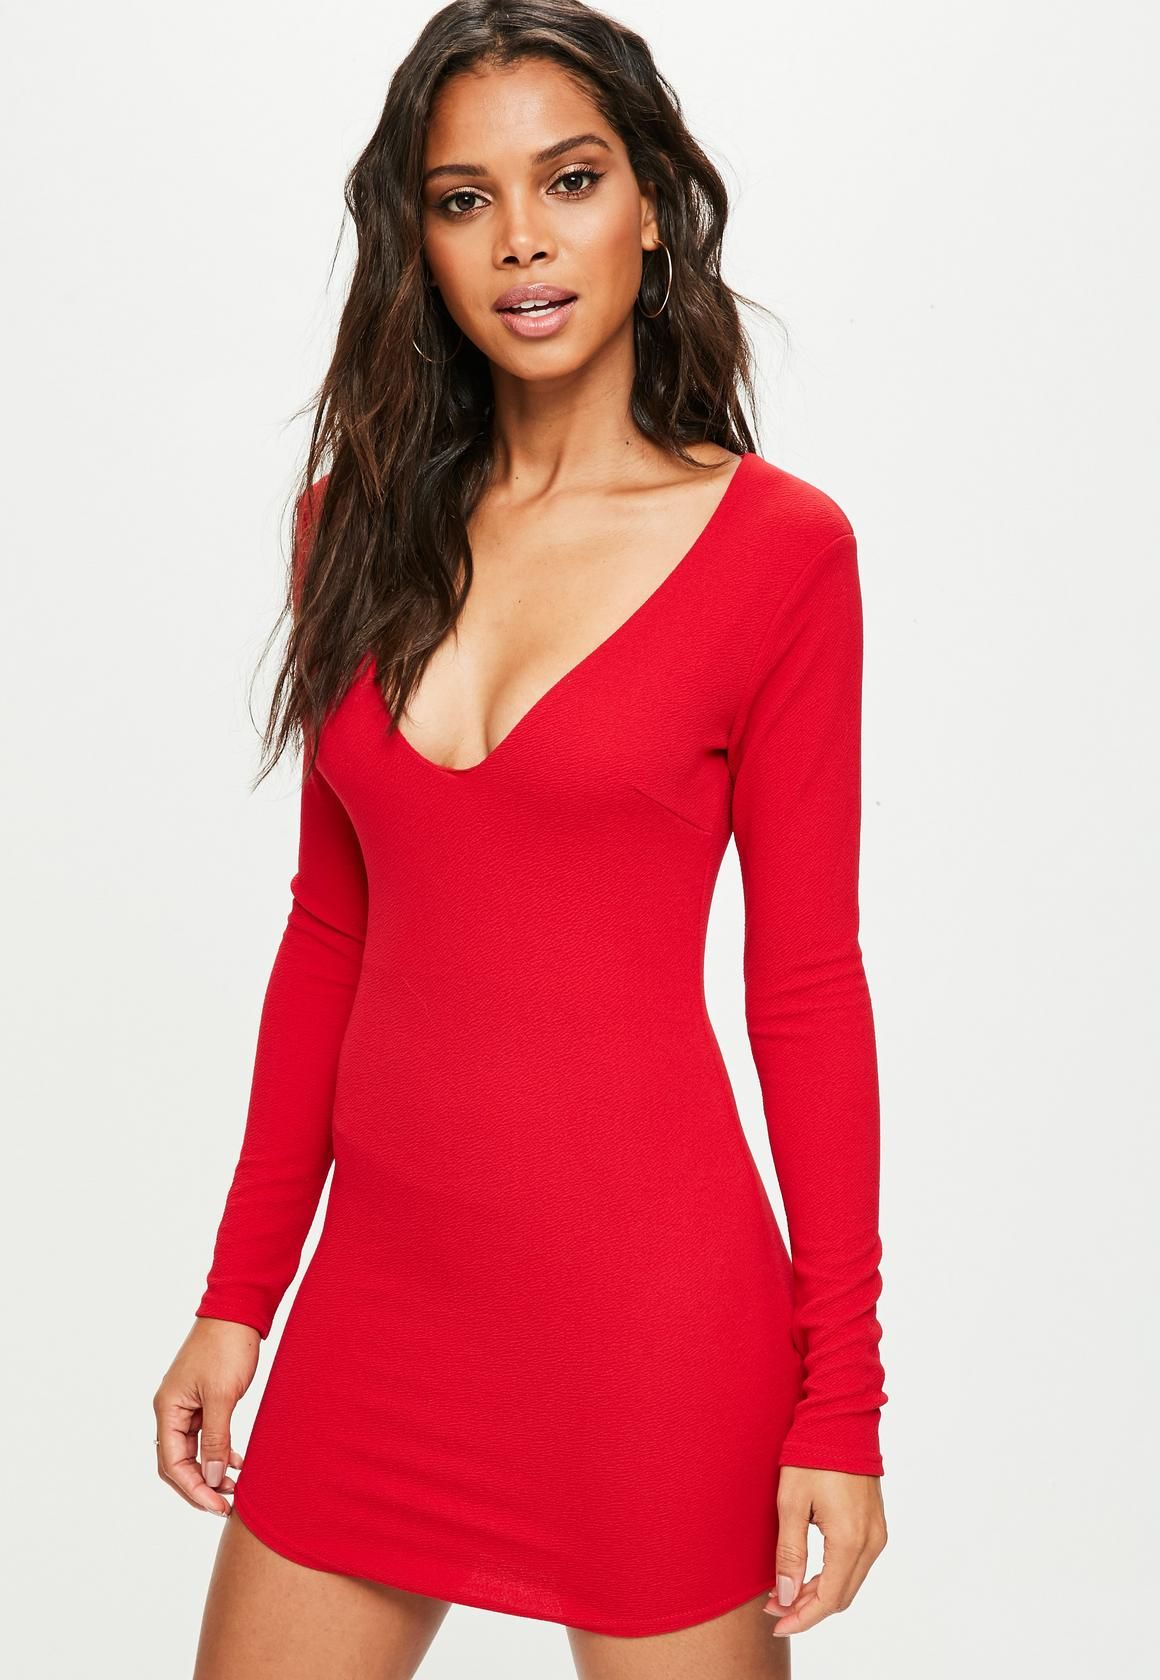 Red Dress In A Crepe Fabric Bodycon Style And Long Sleeves Dresses Bodycon Fashion Women Dress Online